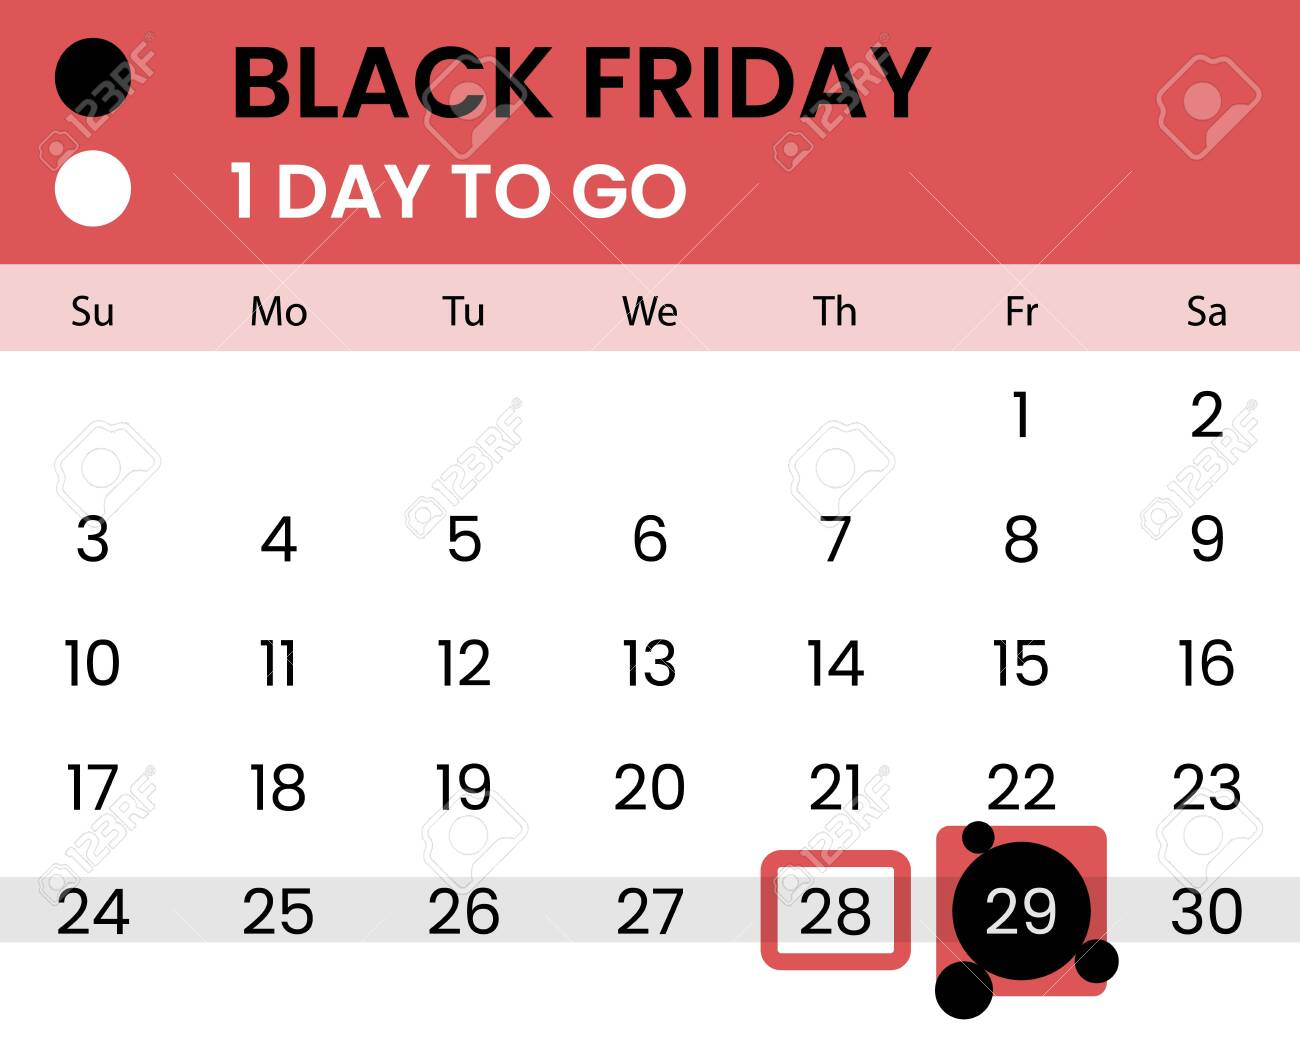 Black Friday Banner As Calendar With Countdown - 1 Day To Go